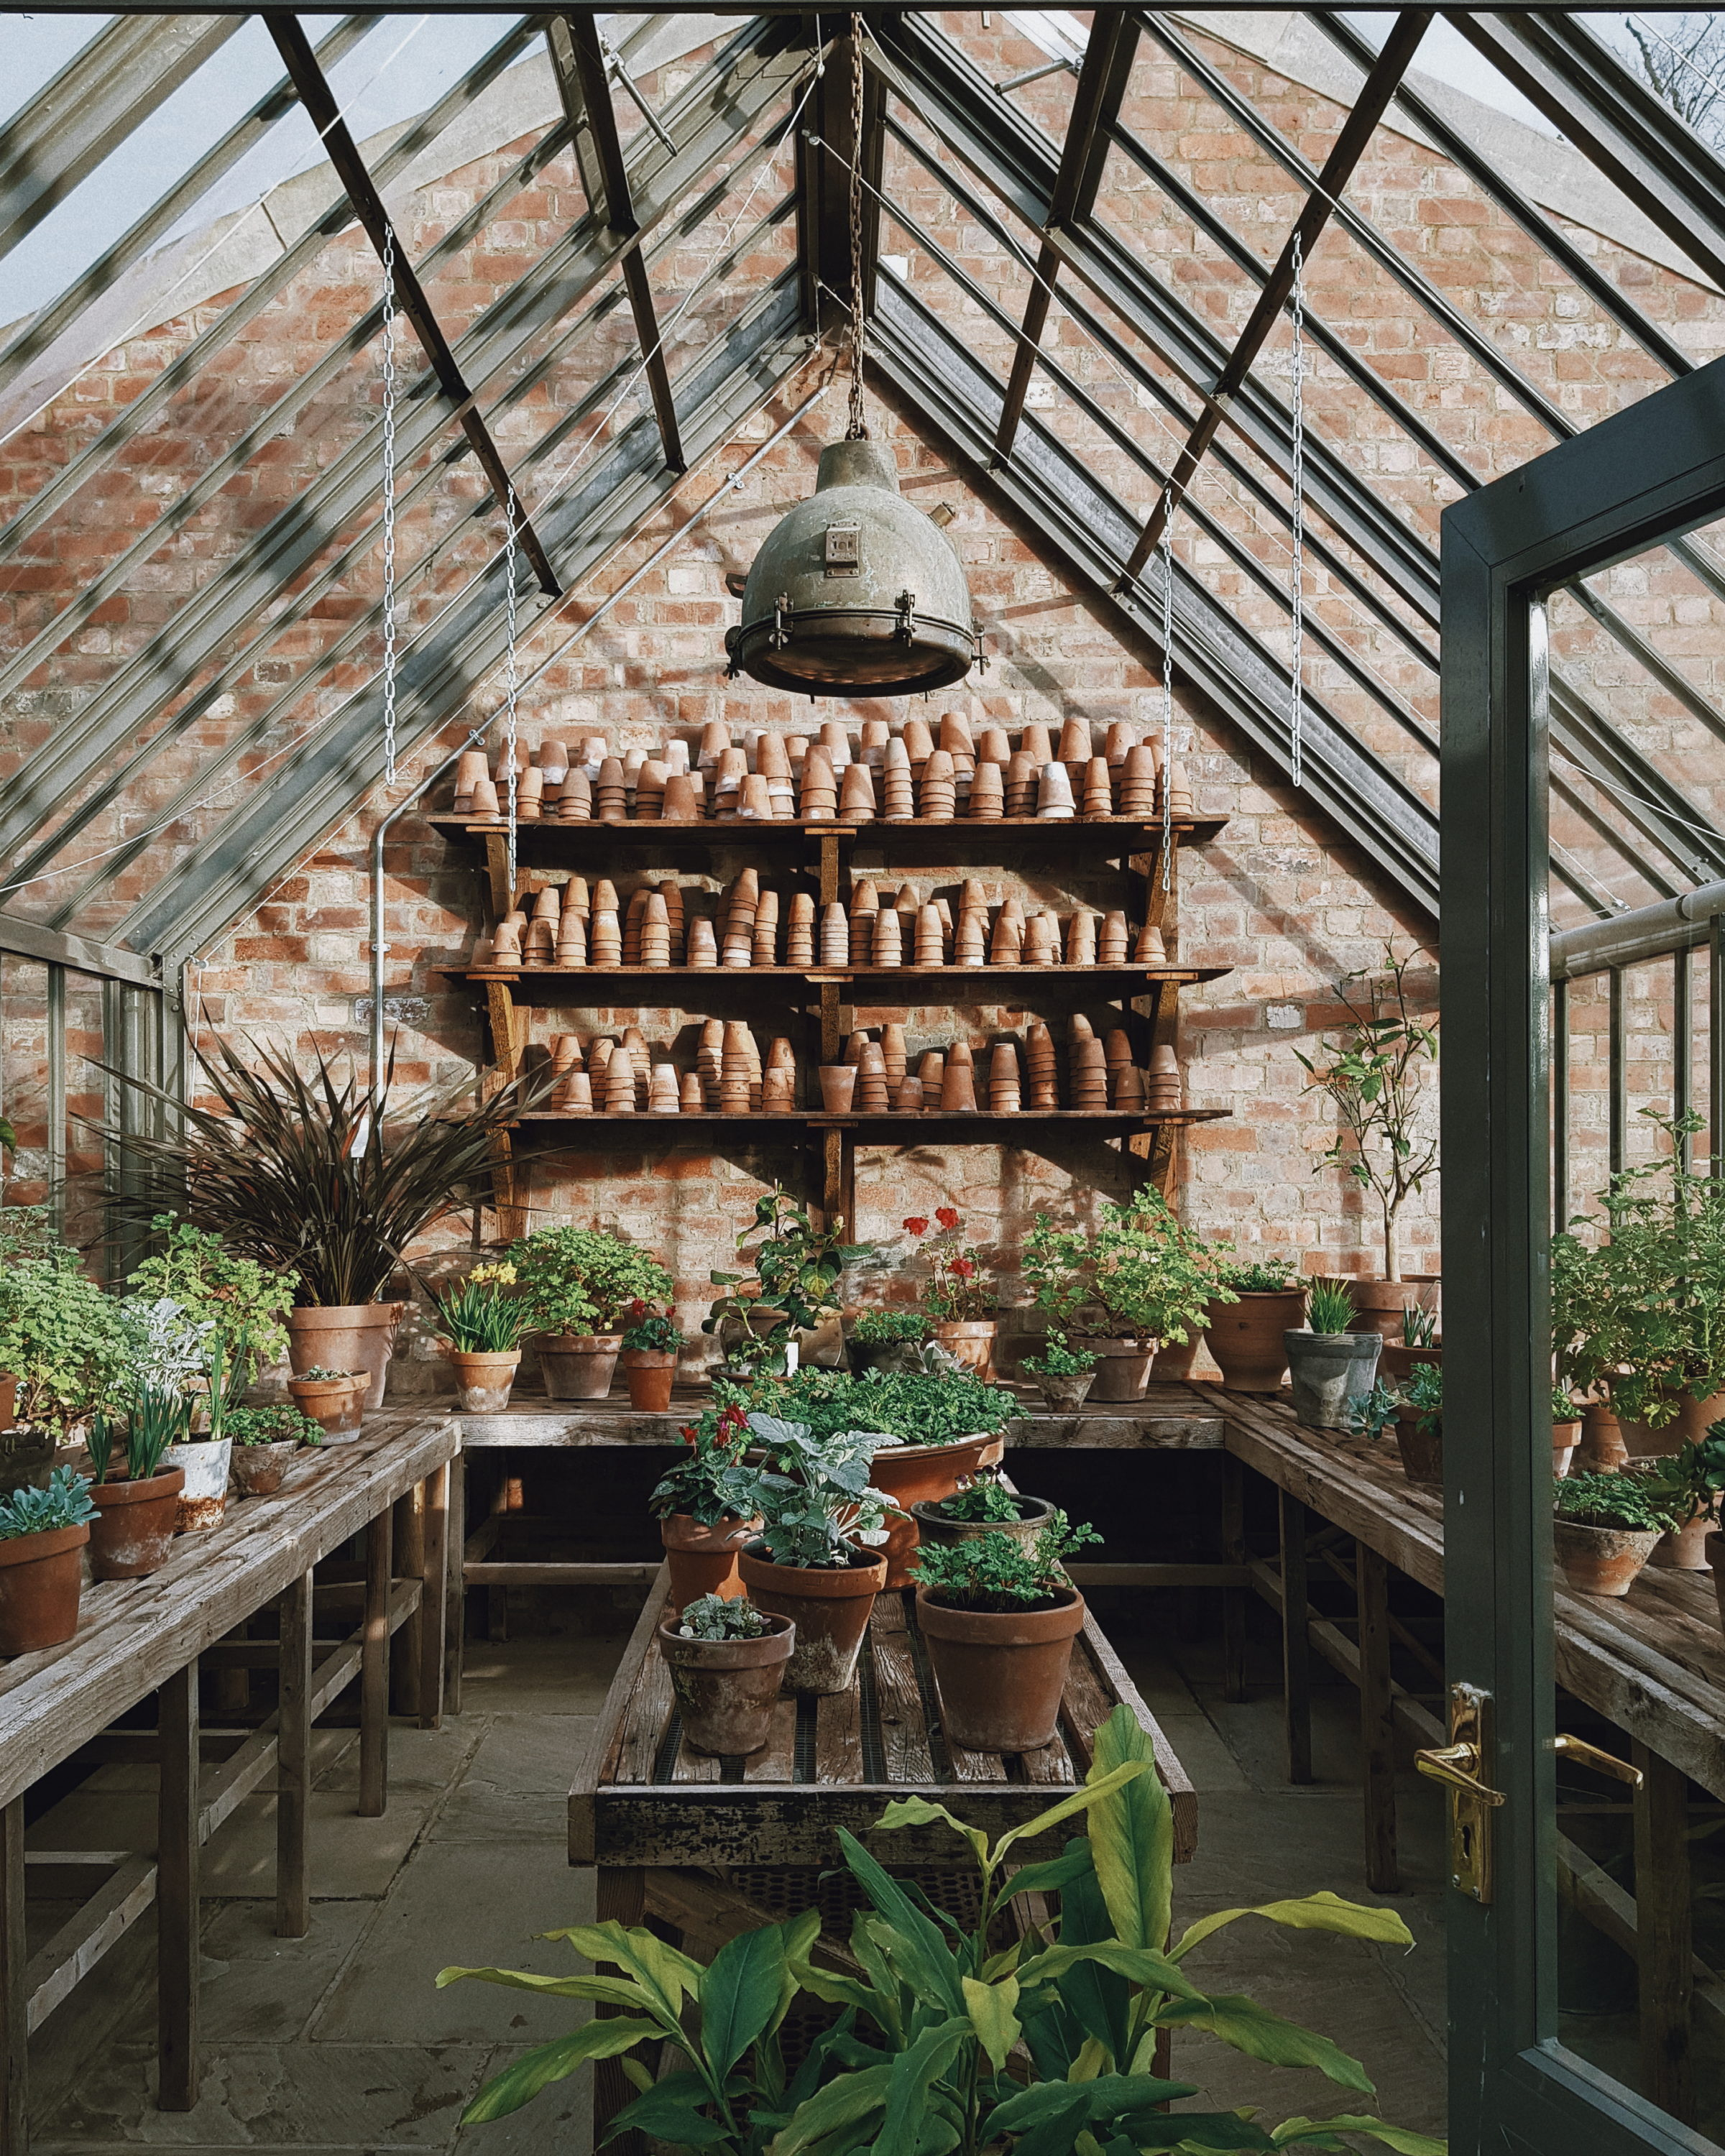 soho farmhouse travel littlegreenshed Feb 2018